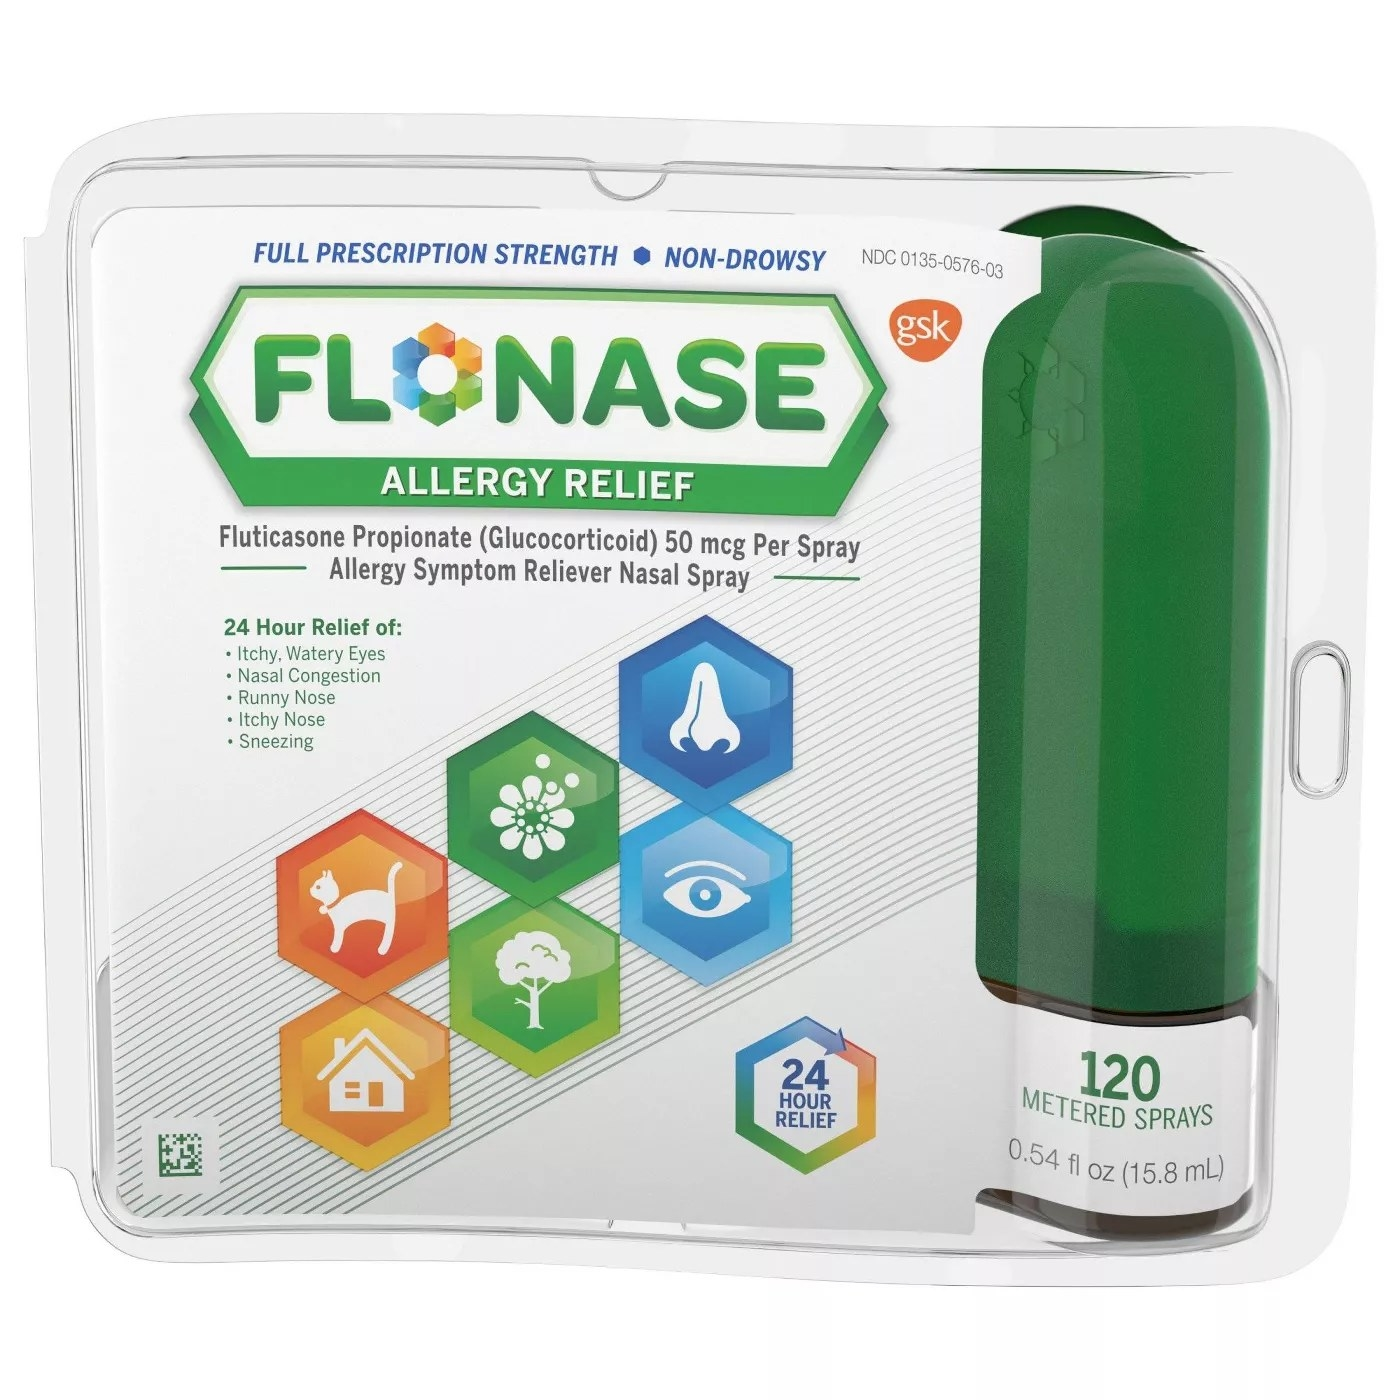 A bottle of 120 sprays of Flonase which offers 24 hours of allergy symptom relief